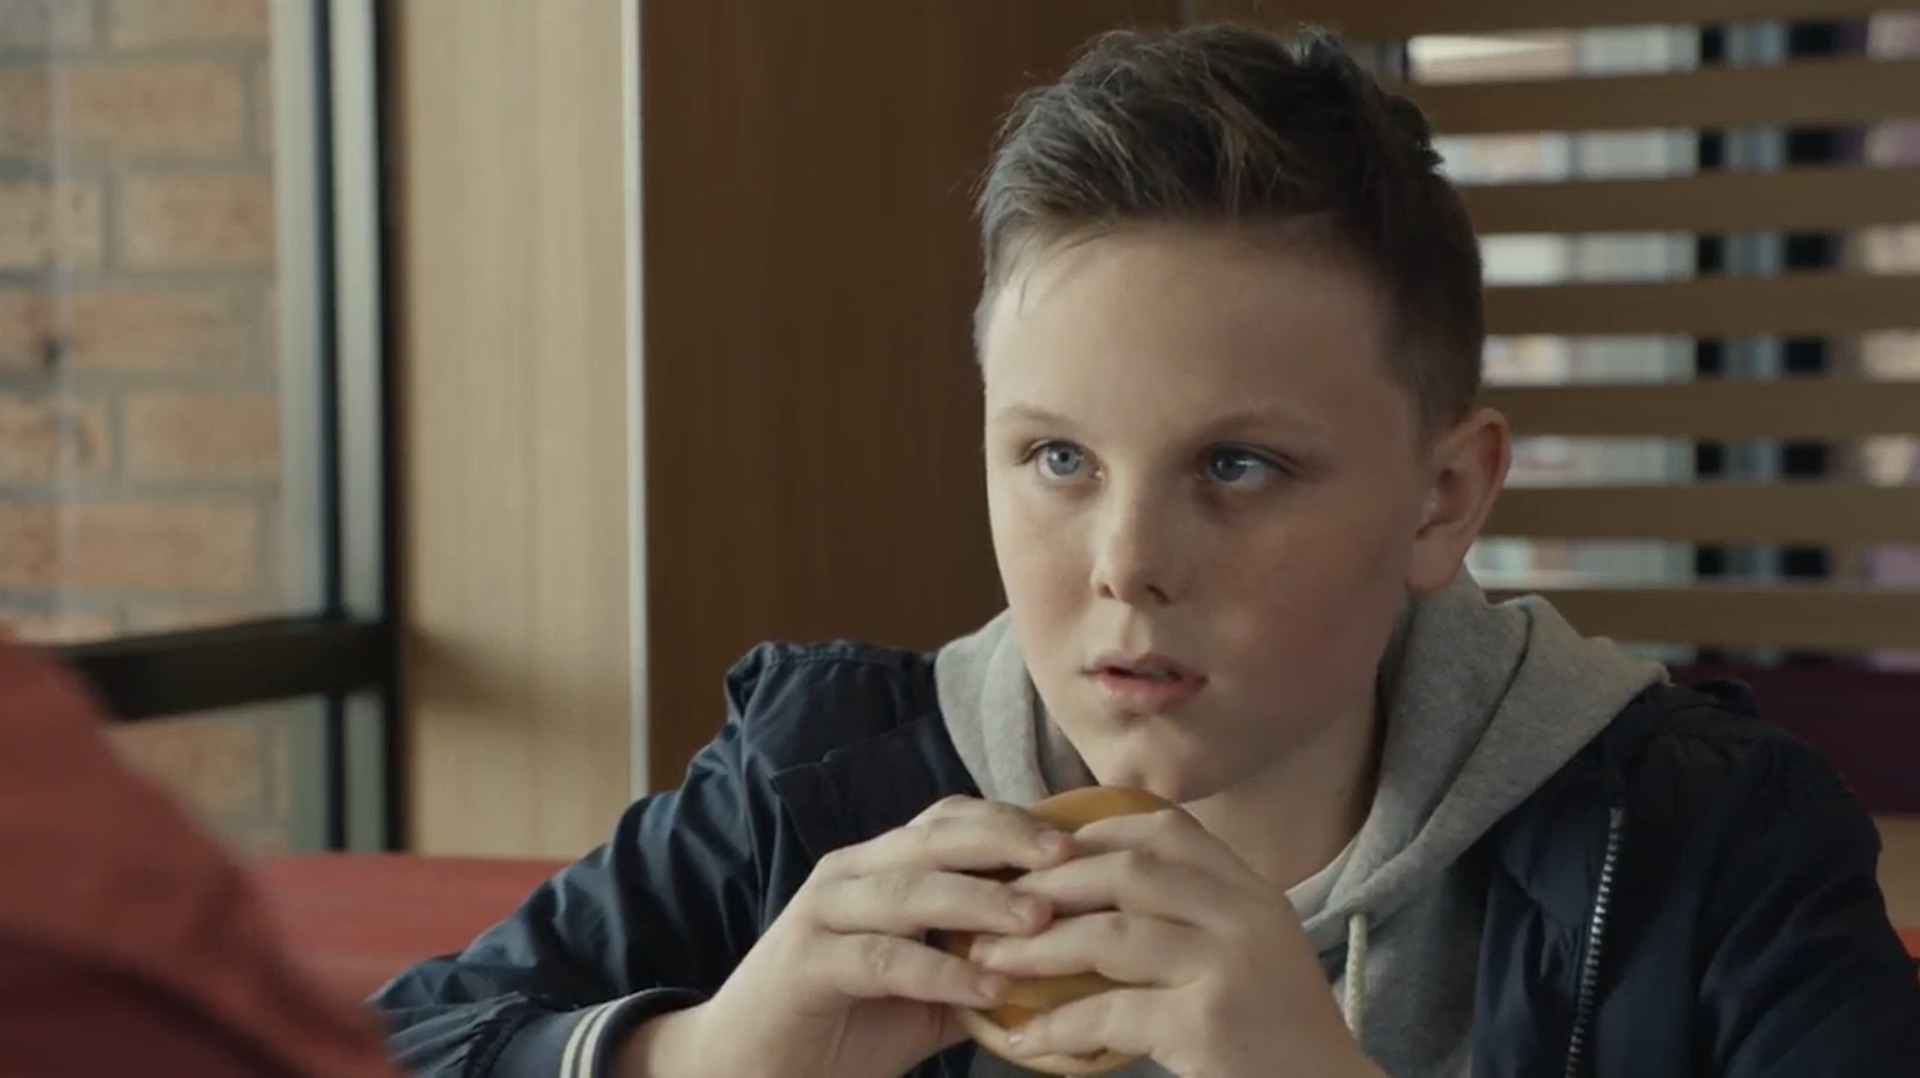 McDonald's ad accused of exploiting childhood grief to sell sandwiches